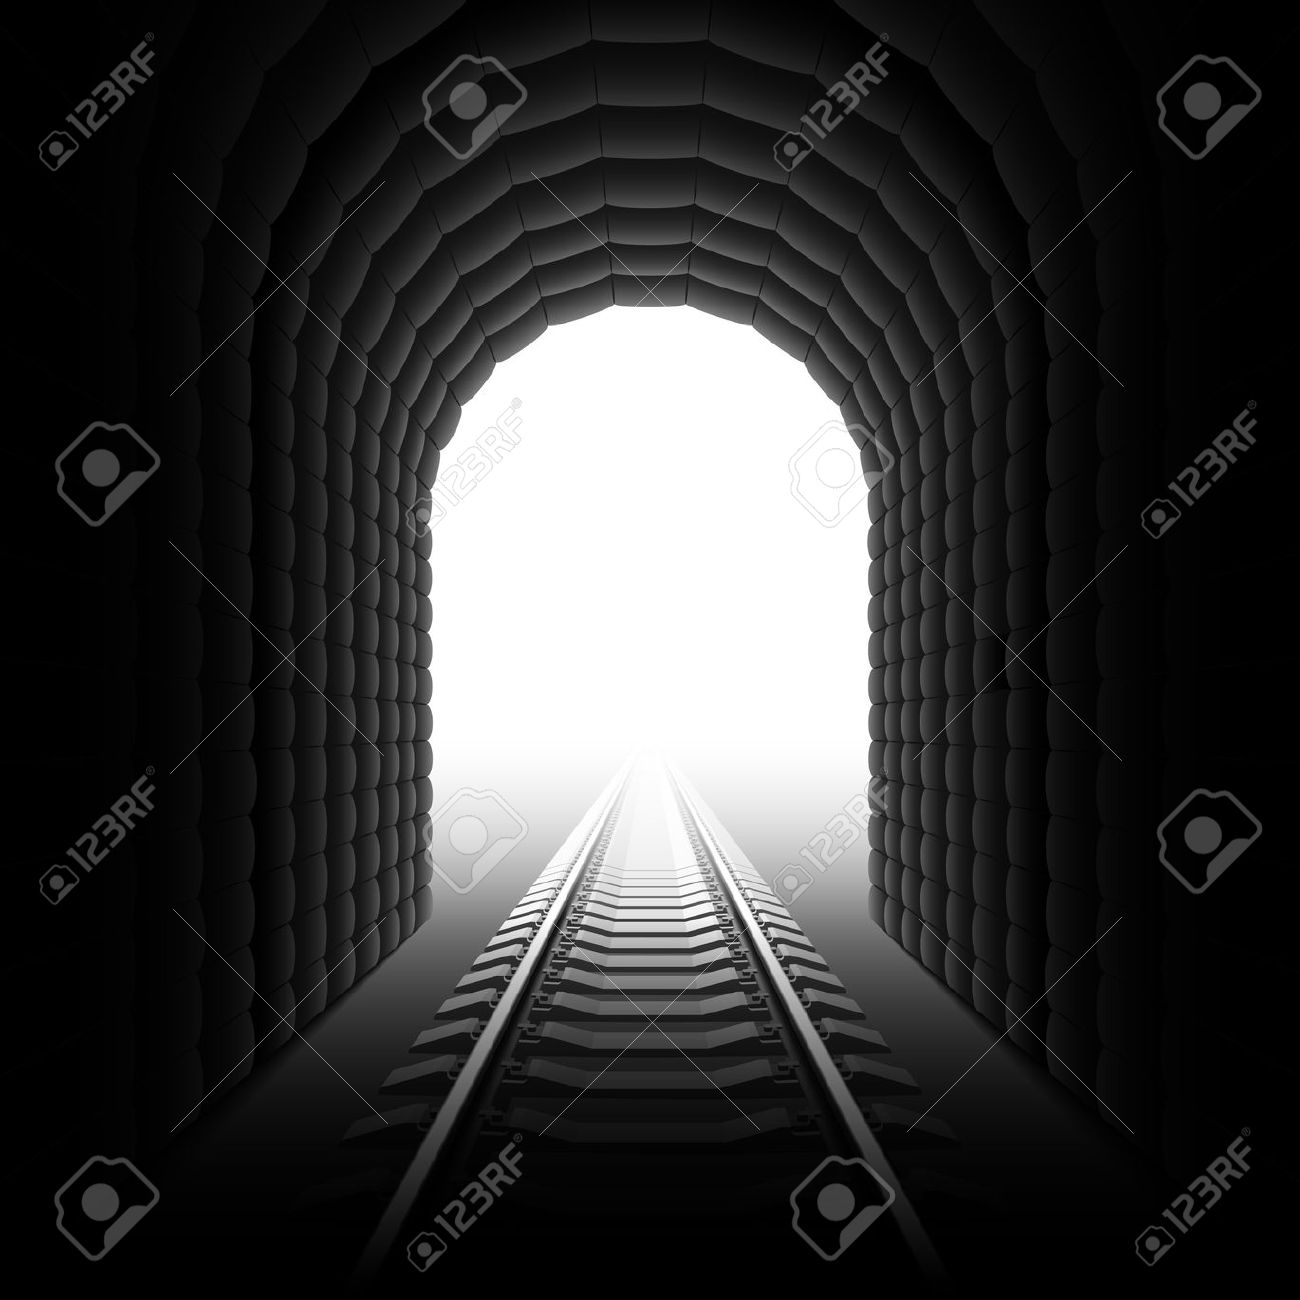 Train tunnel entrance clipart.